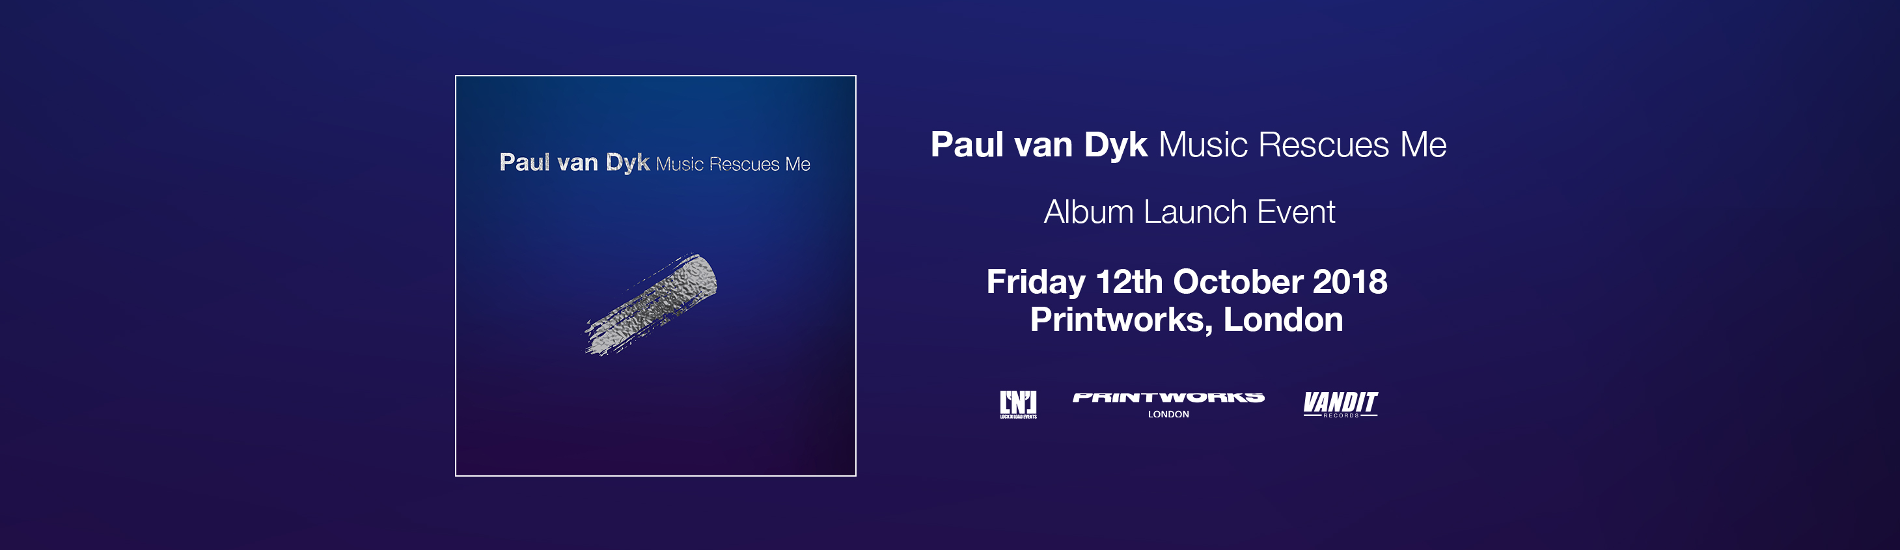 Paul Van Dyk, Printworks, 12th October, 2018